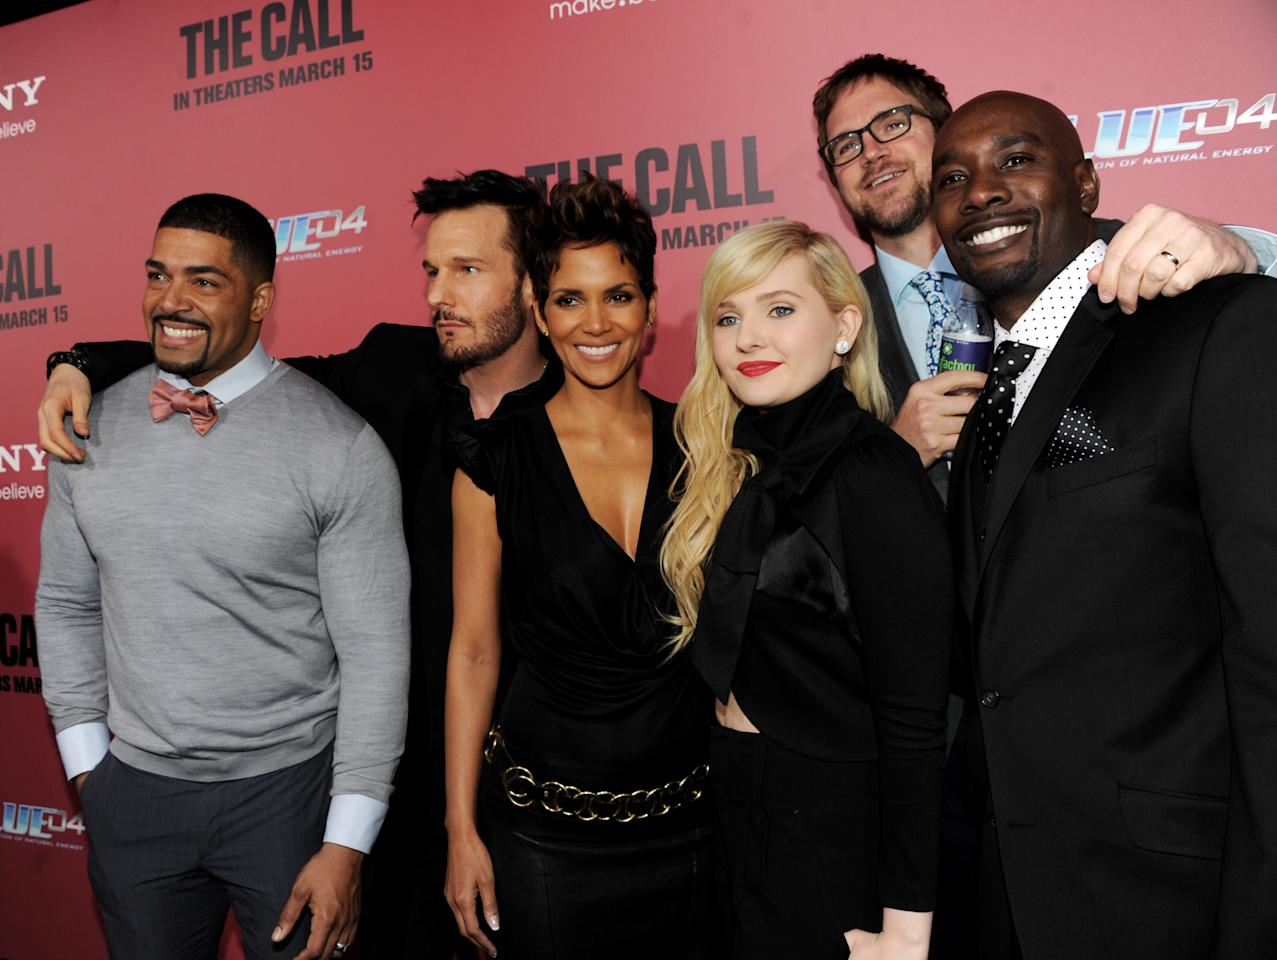 "LOS ANGELES, CA - MARCH 05:  (L-R) Actors David Otunga, Michael Eklund, Halle Berry, Abigail Breslin, director Brad Anderson and actor Morris Chestnut arrive at the premiere of Tri Star Pictures' ""The Call"" at the Arclight Theatre on March 5, 2013 in Los Angeles, California.  (Photo by Kevin Winter/Getty Images)"